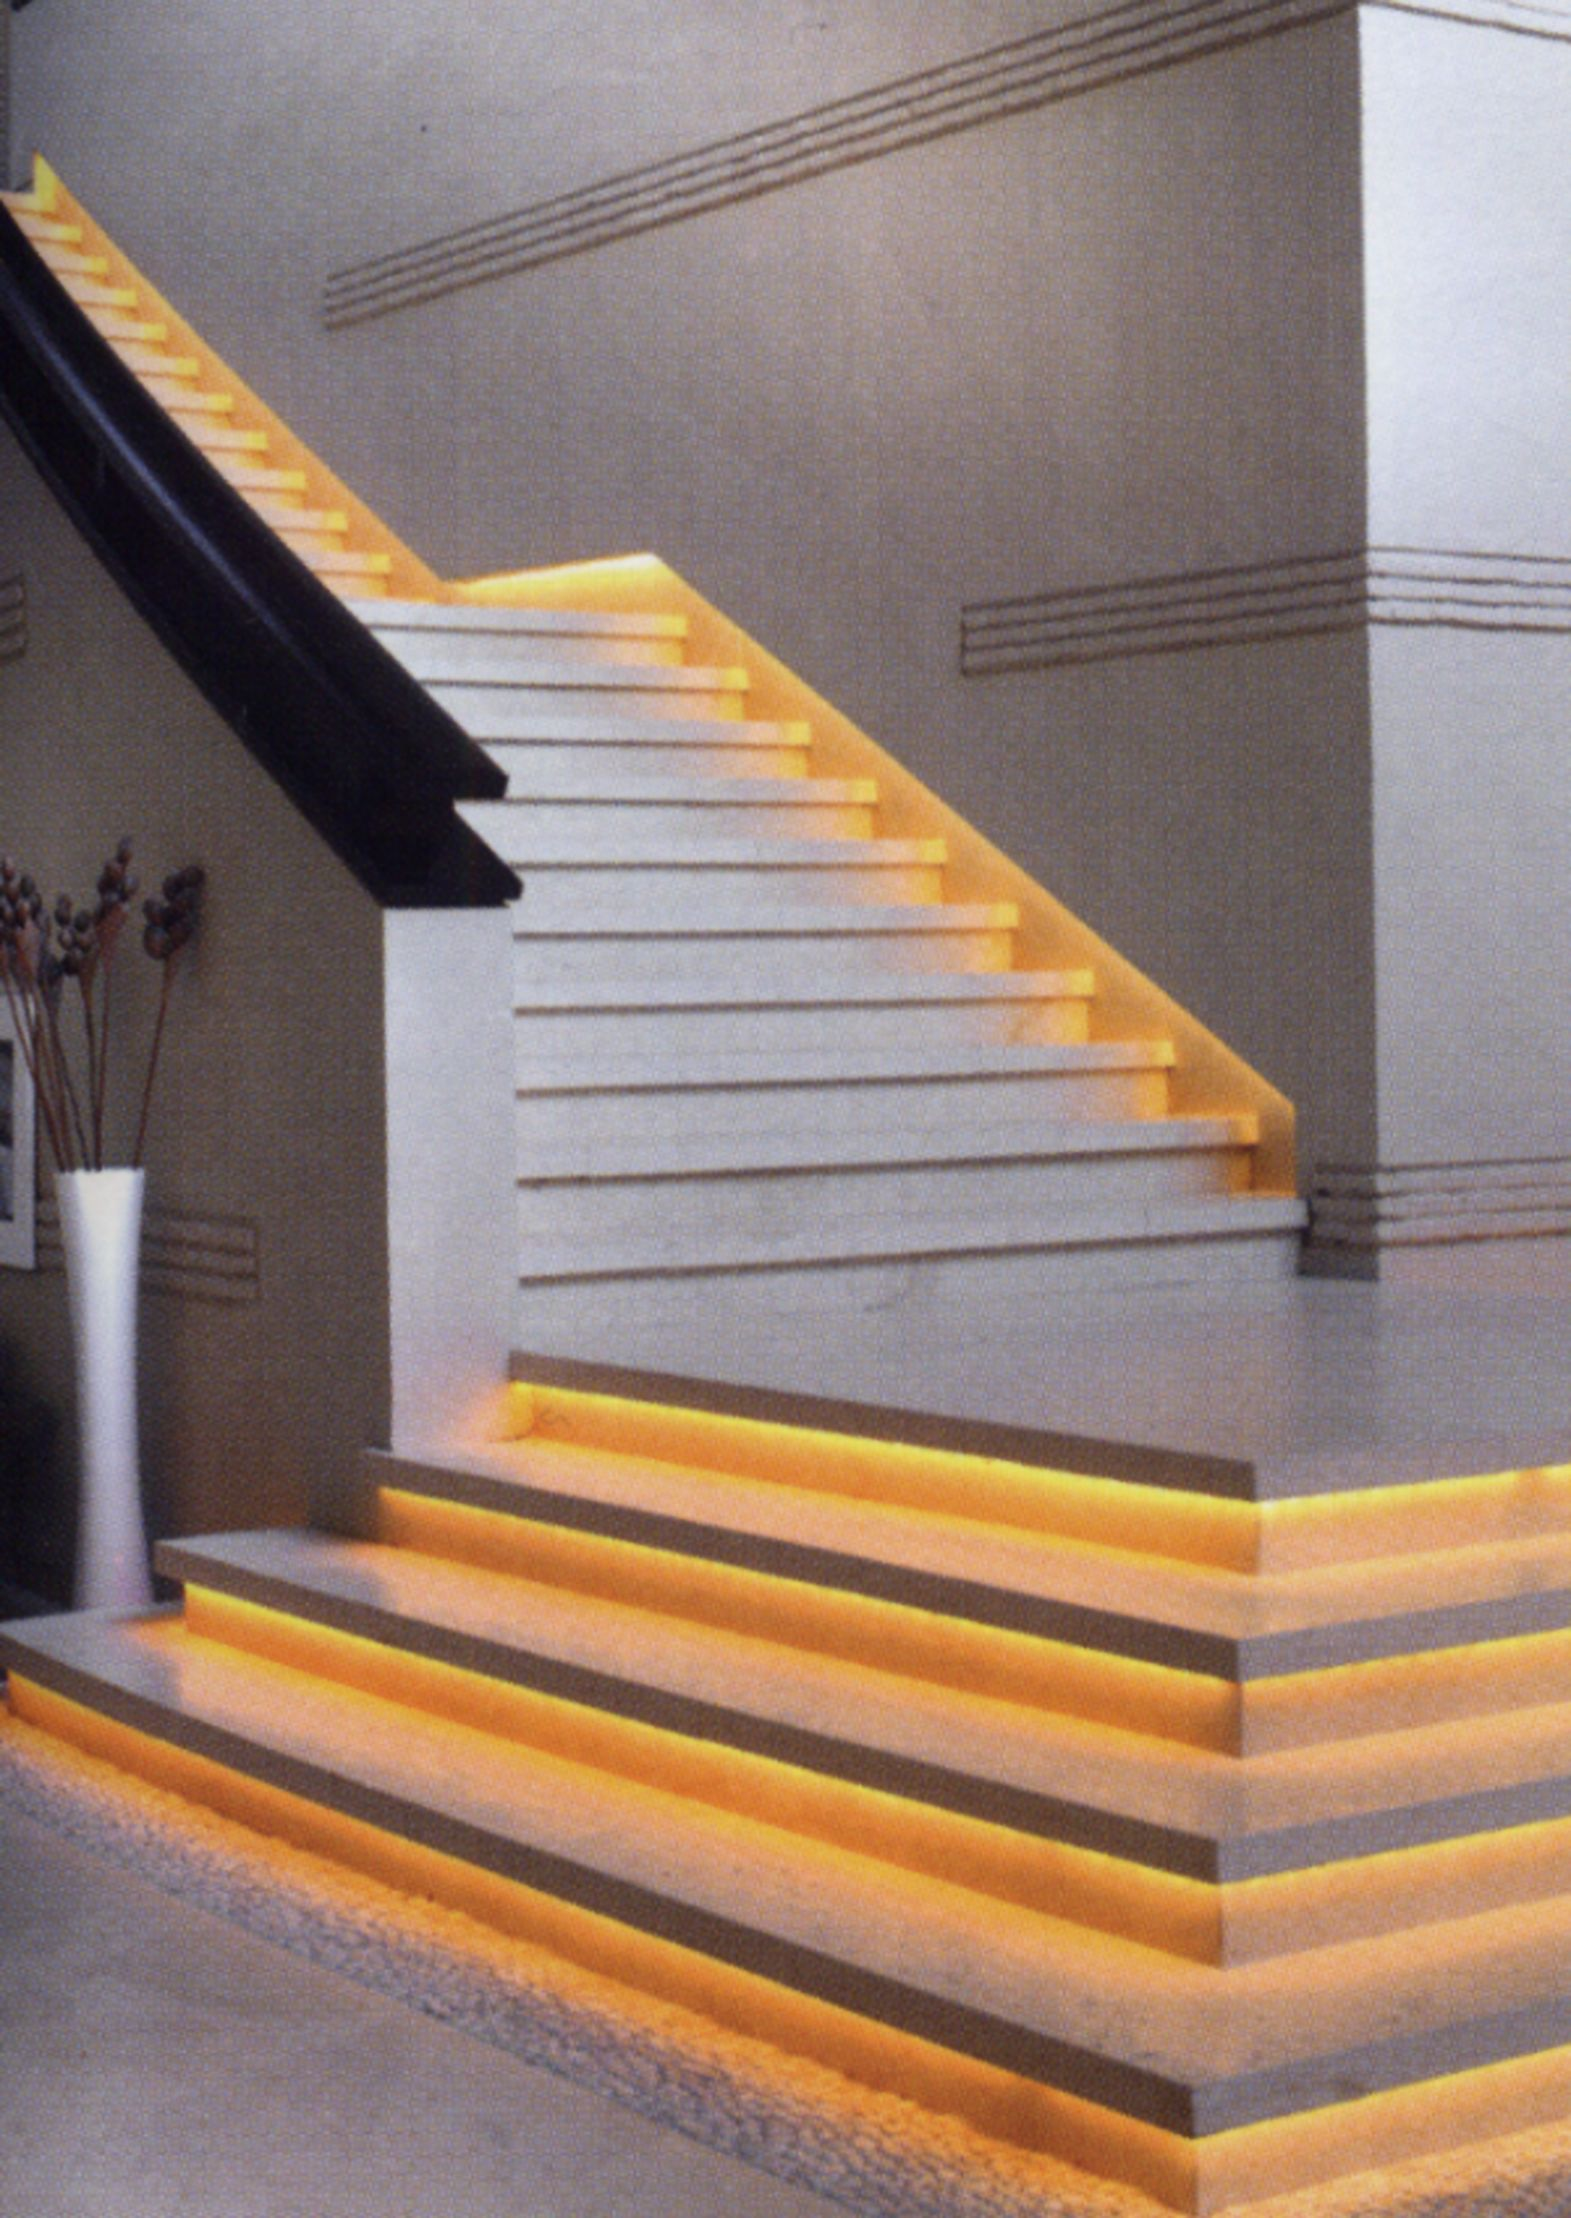 Lighting Basement Washroom Stairs: This Is A Good Example Of What An LED Strip Under The Lip